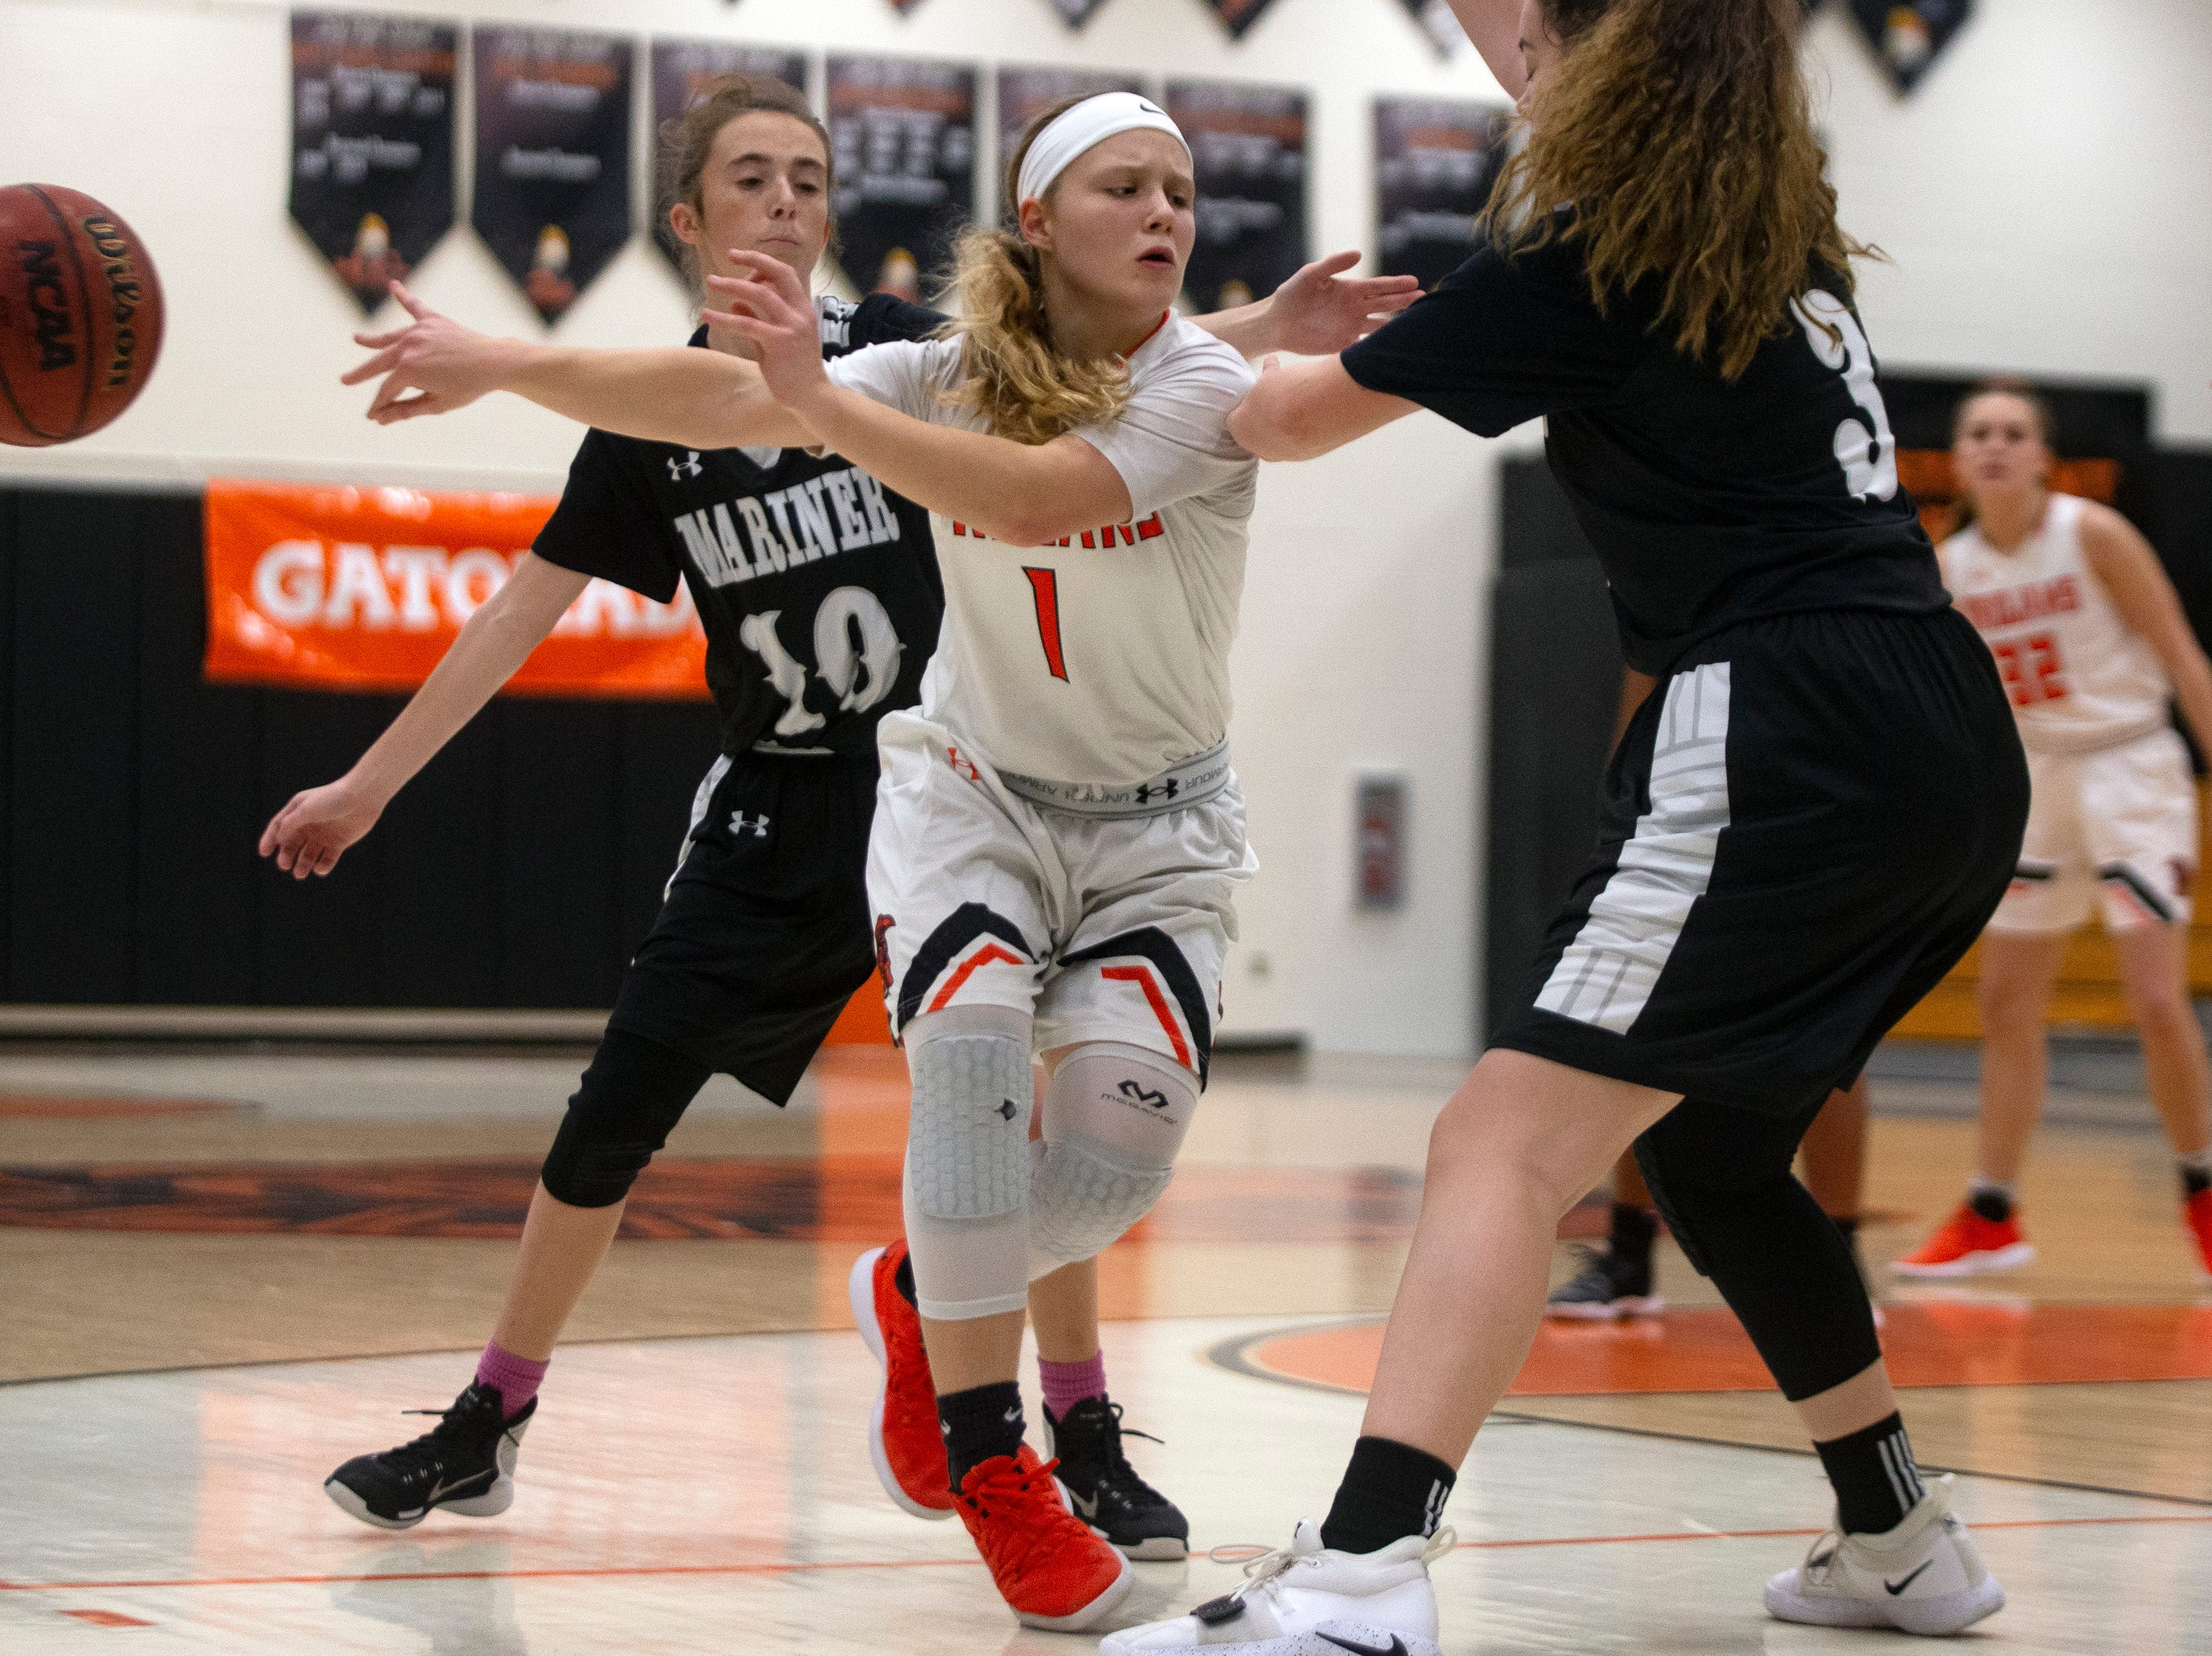 Lely High School's Gabby Wetzel passes the basketball during their game against Mariners High School, Thursday, Feb. 6, 2019, at Lely High School.